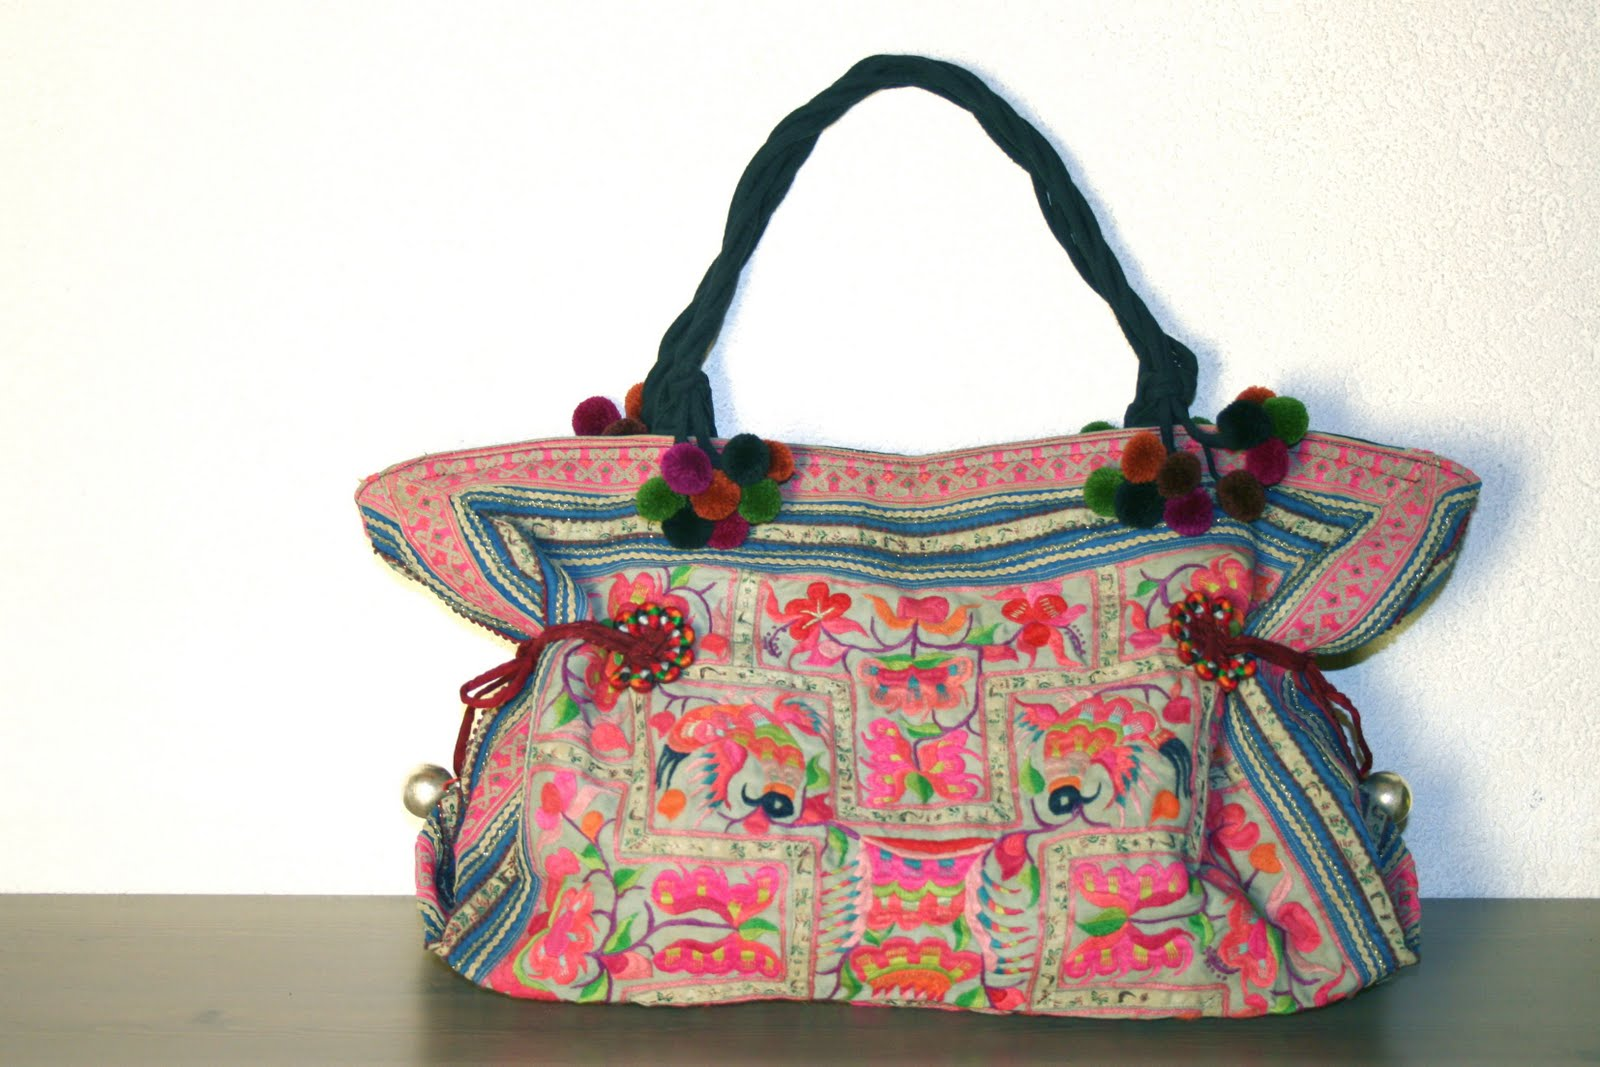 Sac main ethnique Style baba cool chic